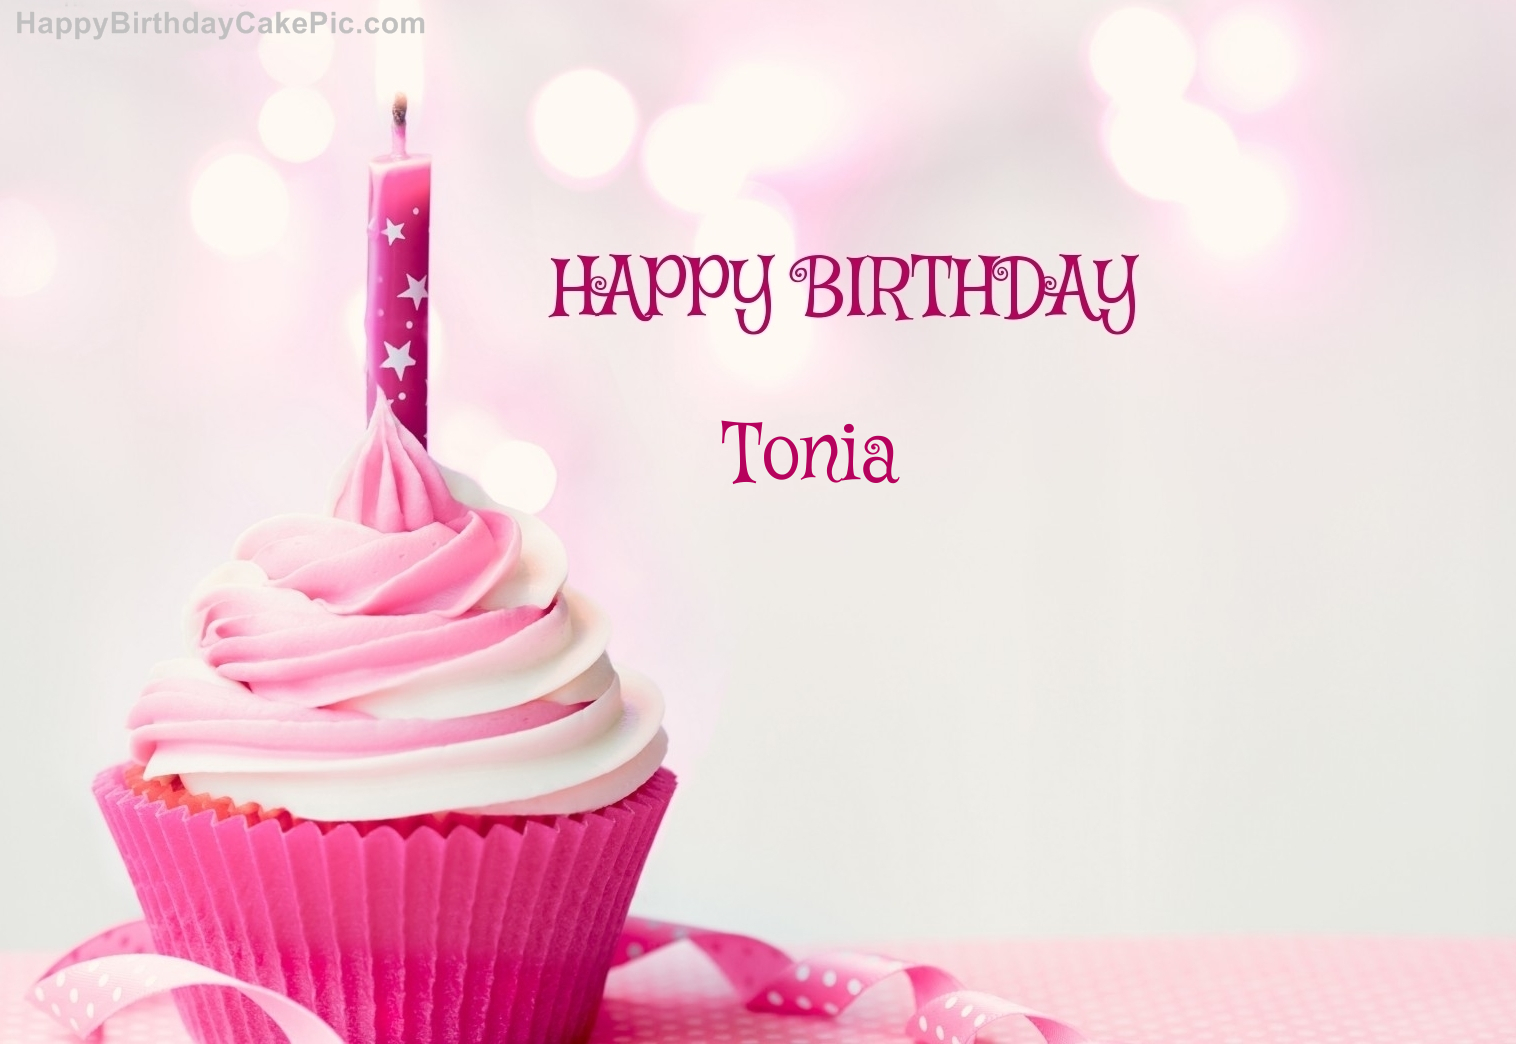 ❤️ Happy Birthday Cupcake Candle Pink Cake For Tonia